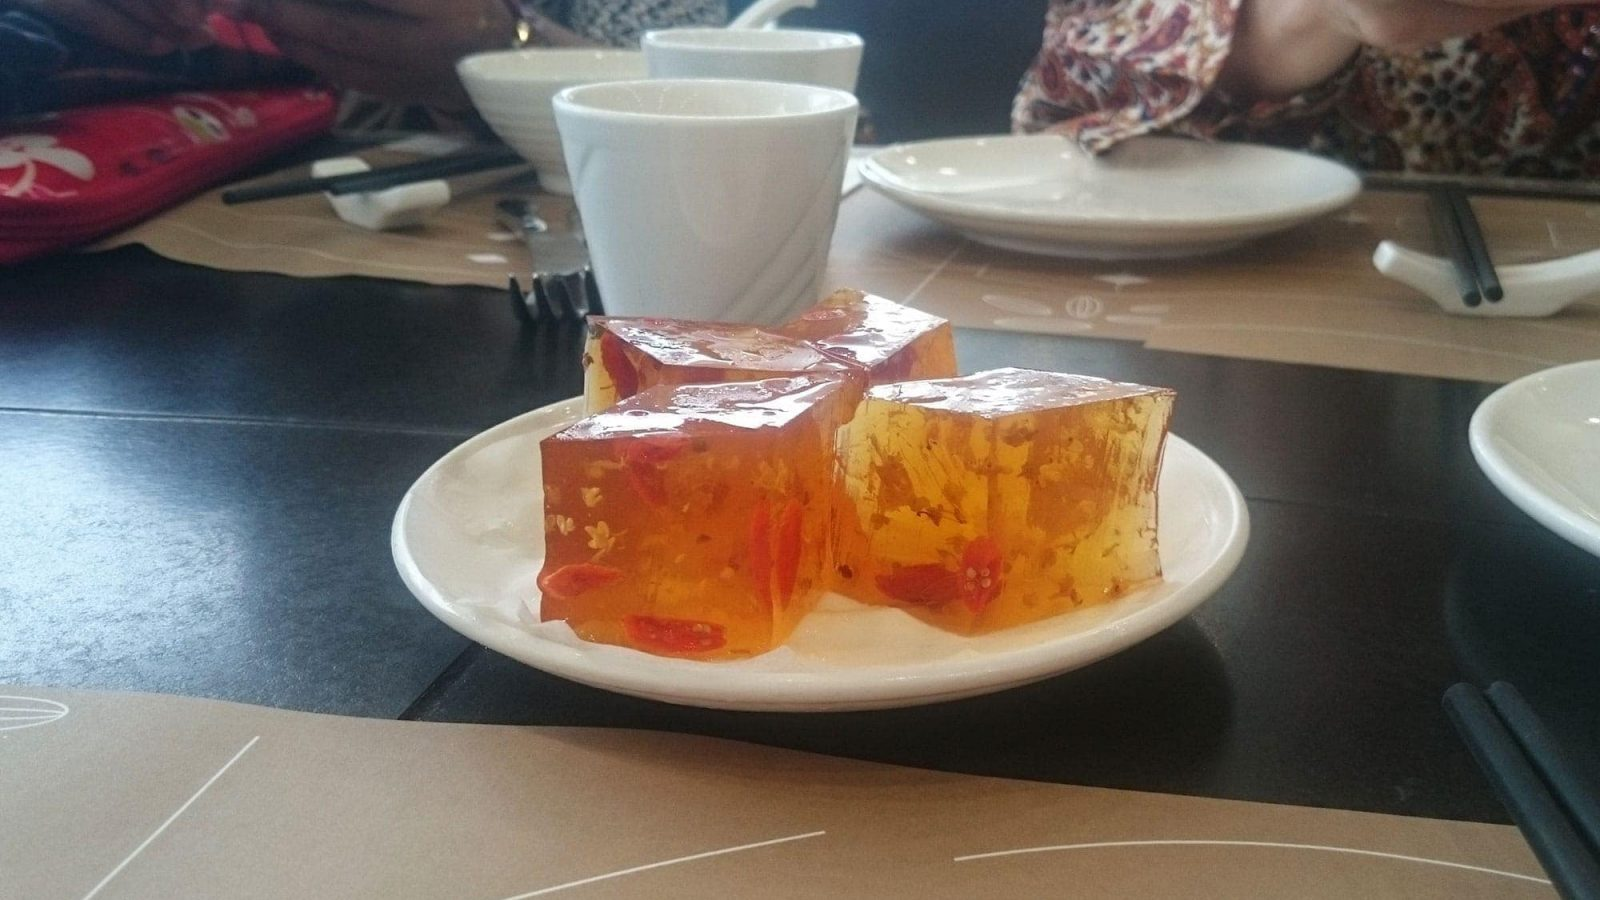 Osmanthus jelly at Pak Loh Chiu Chow, HK International Airport